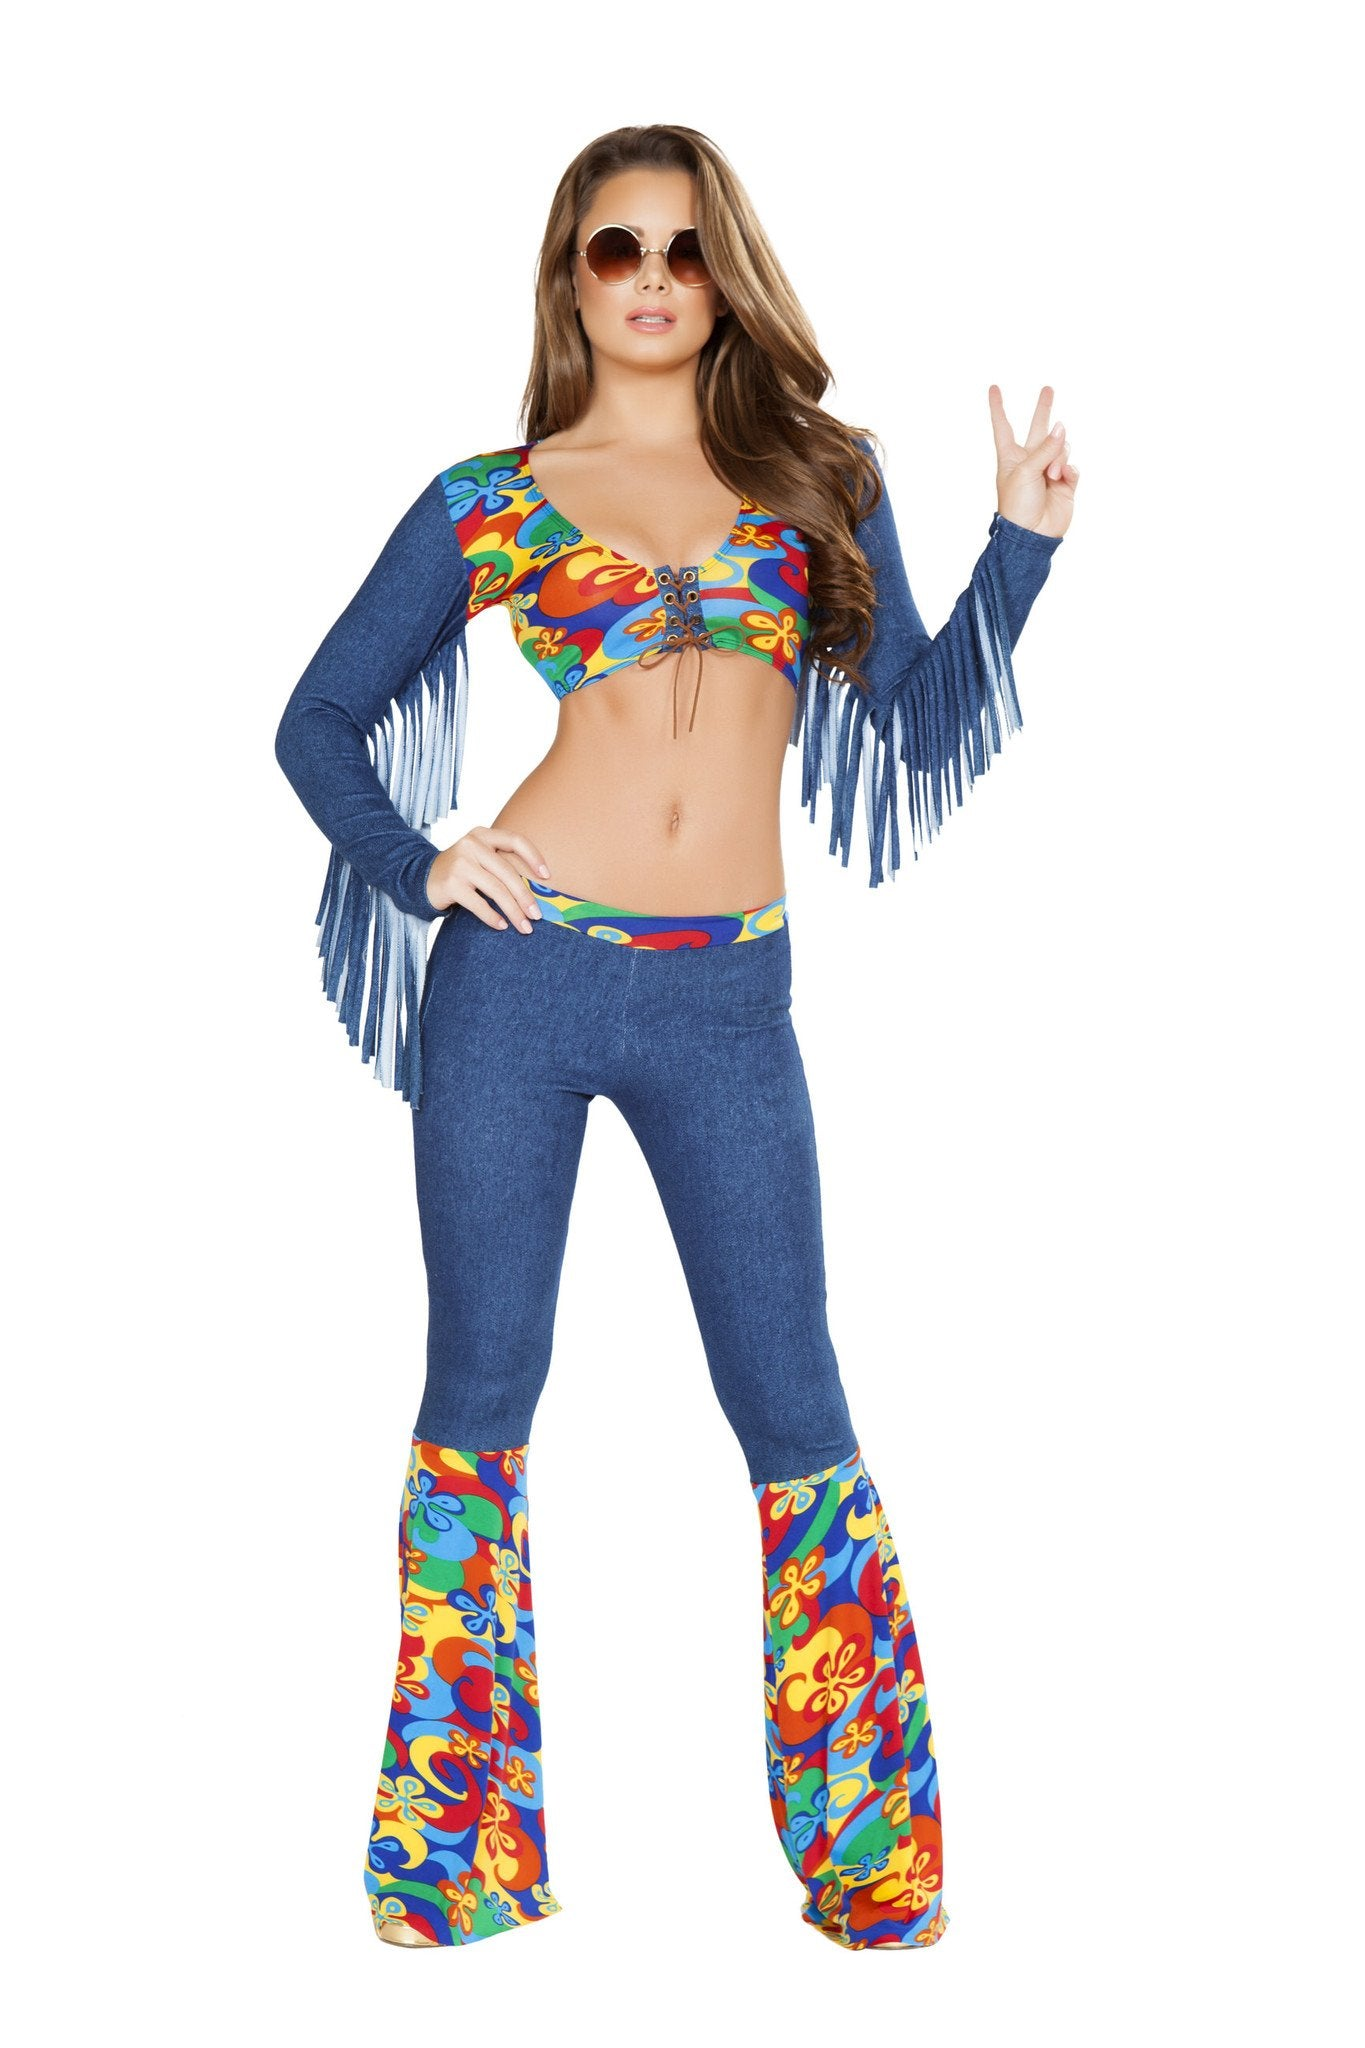 Buy 4749 - 2pc Groovy Love Child from Rave Fix for $56.25 with Same Day Shipping Designed by Roma Costume 4749-AS-L